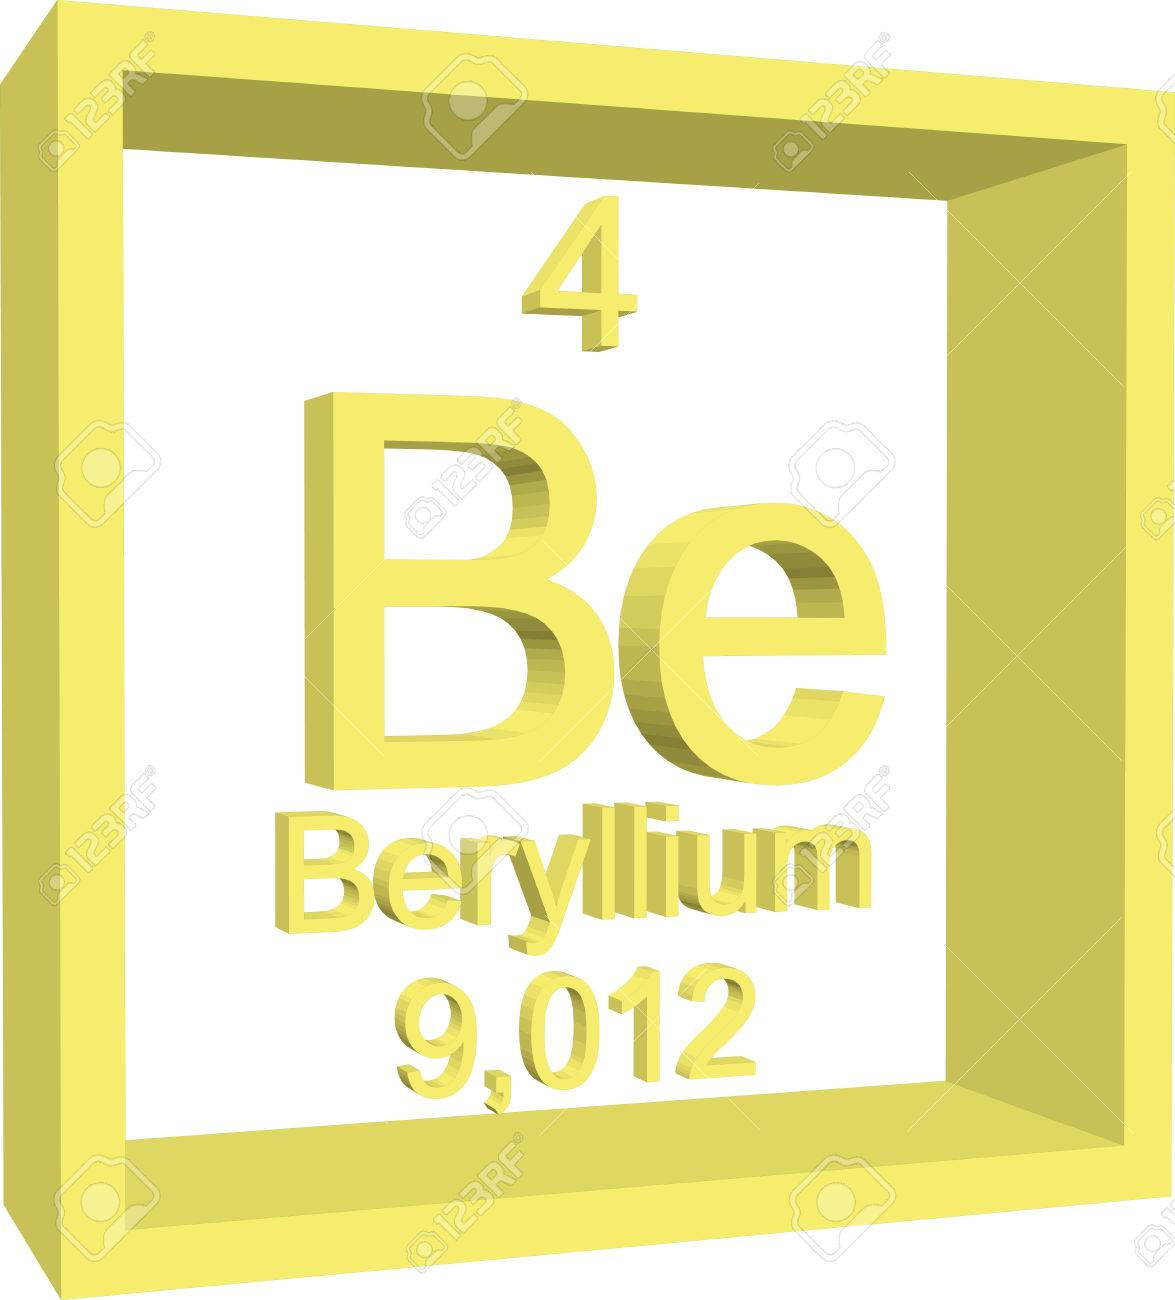 Periodic table of elements beryllium royalty free cliparts periodic table of elements beryllium stock vector 57967512 urtaz Choice Image